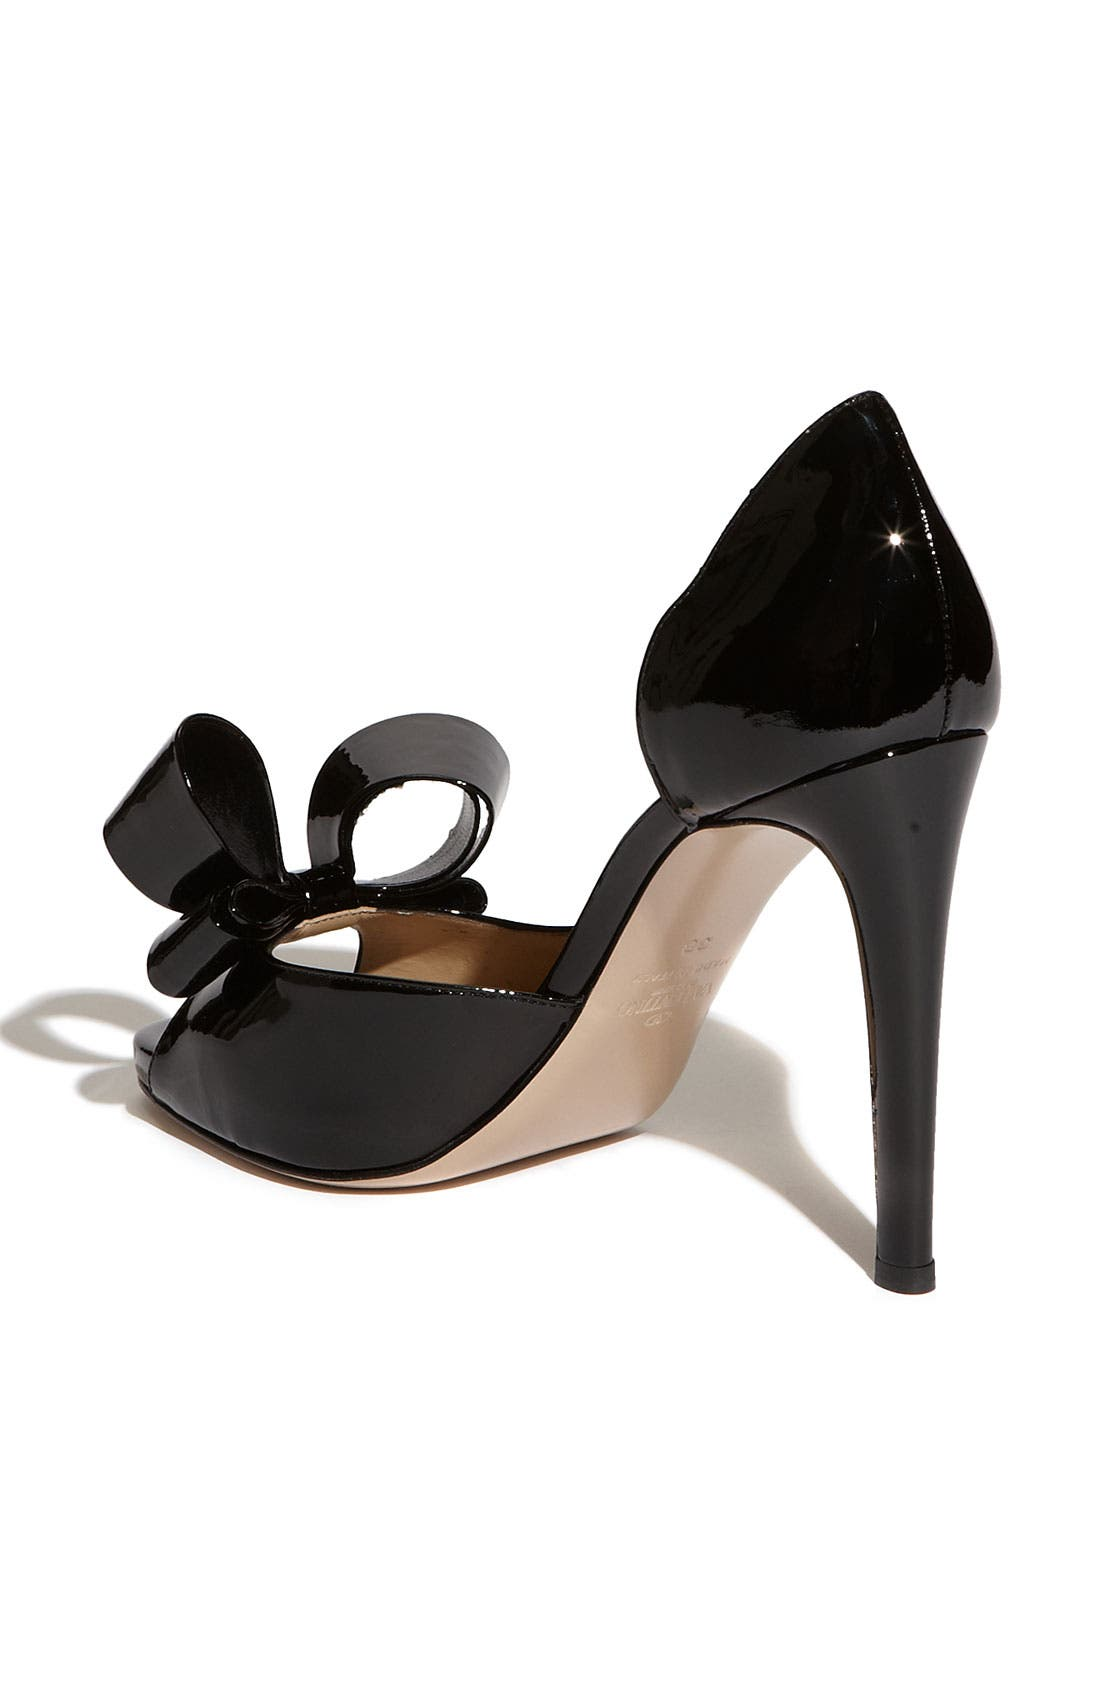 Couture Bow d'Orsay Pump,                             Alternate thumbnail 3, color,                             001